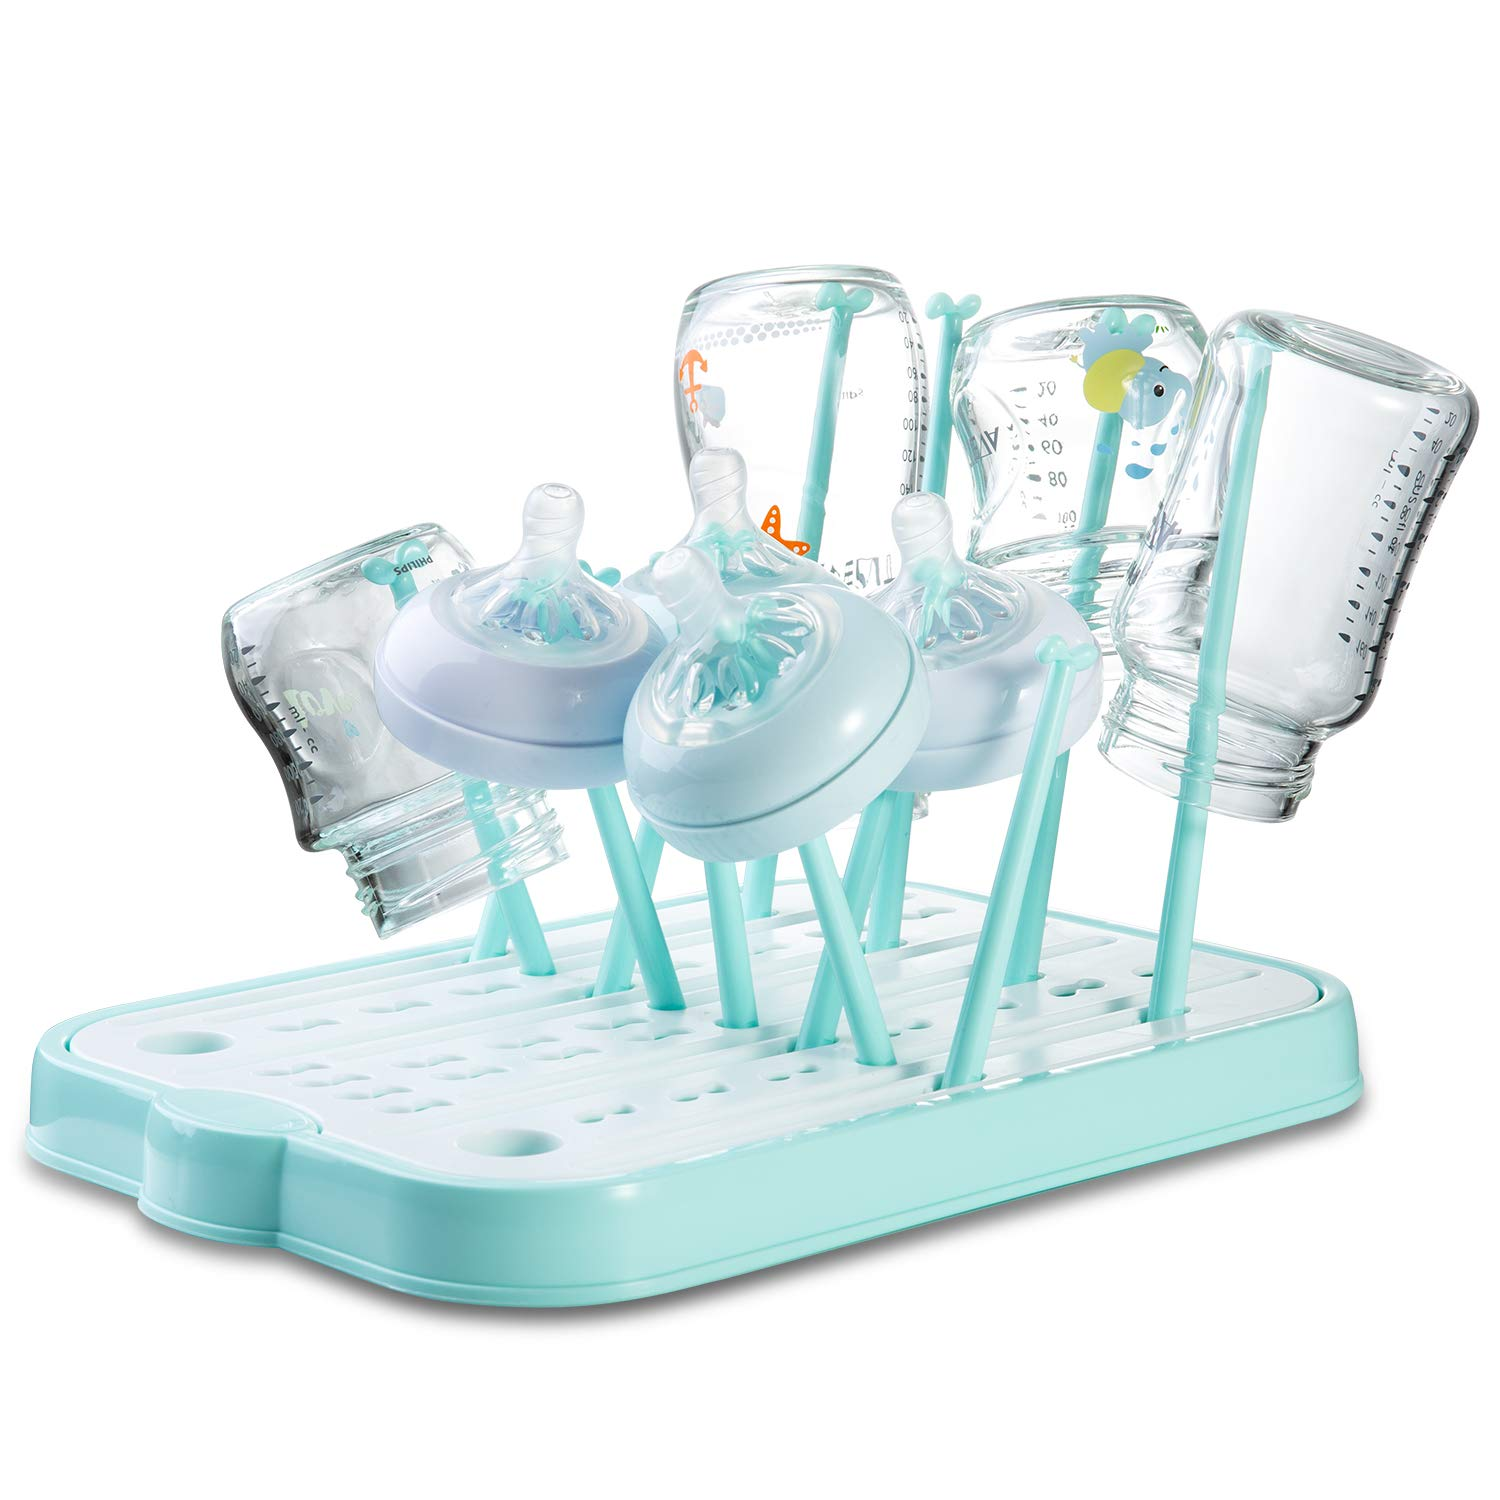 baby bottle drying rack countertop dryer rack with drainer board for baby bottles and accessories blue